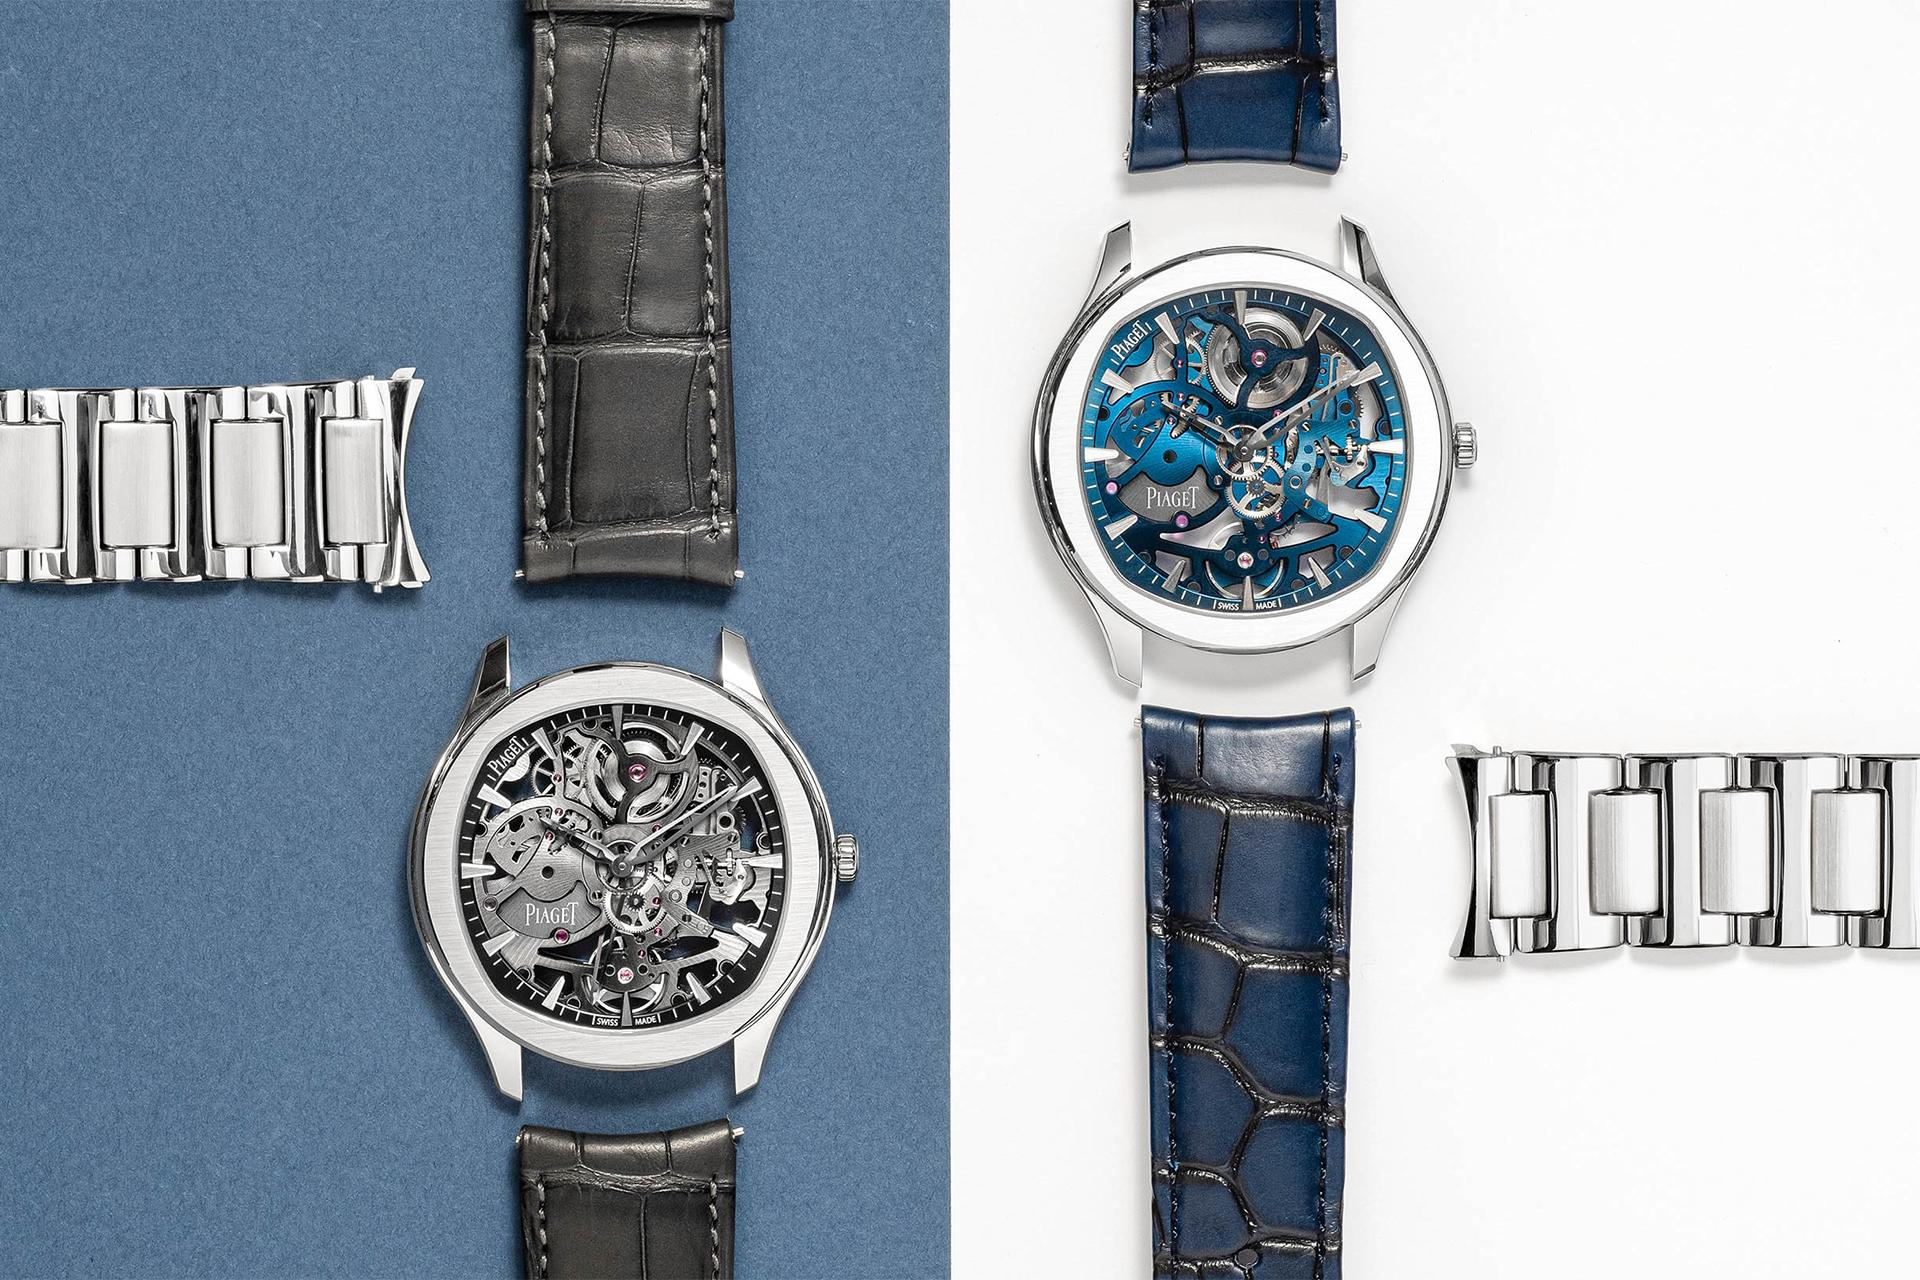 Piaget Polo Skeleton Ultra-Thin watch, Watches & Wonders 2021